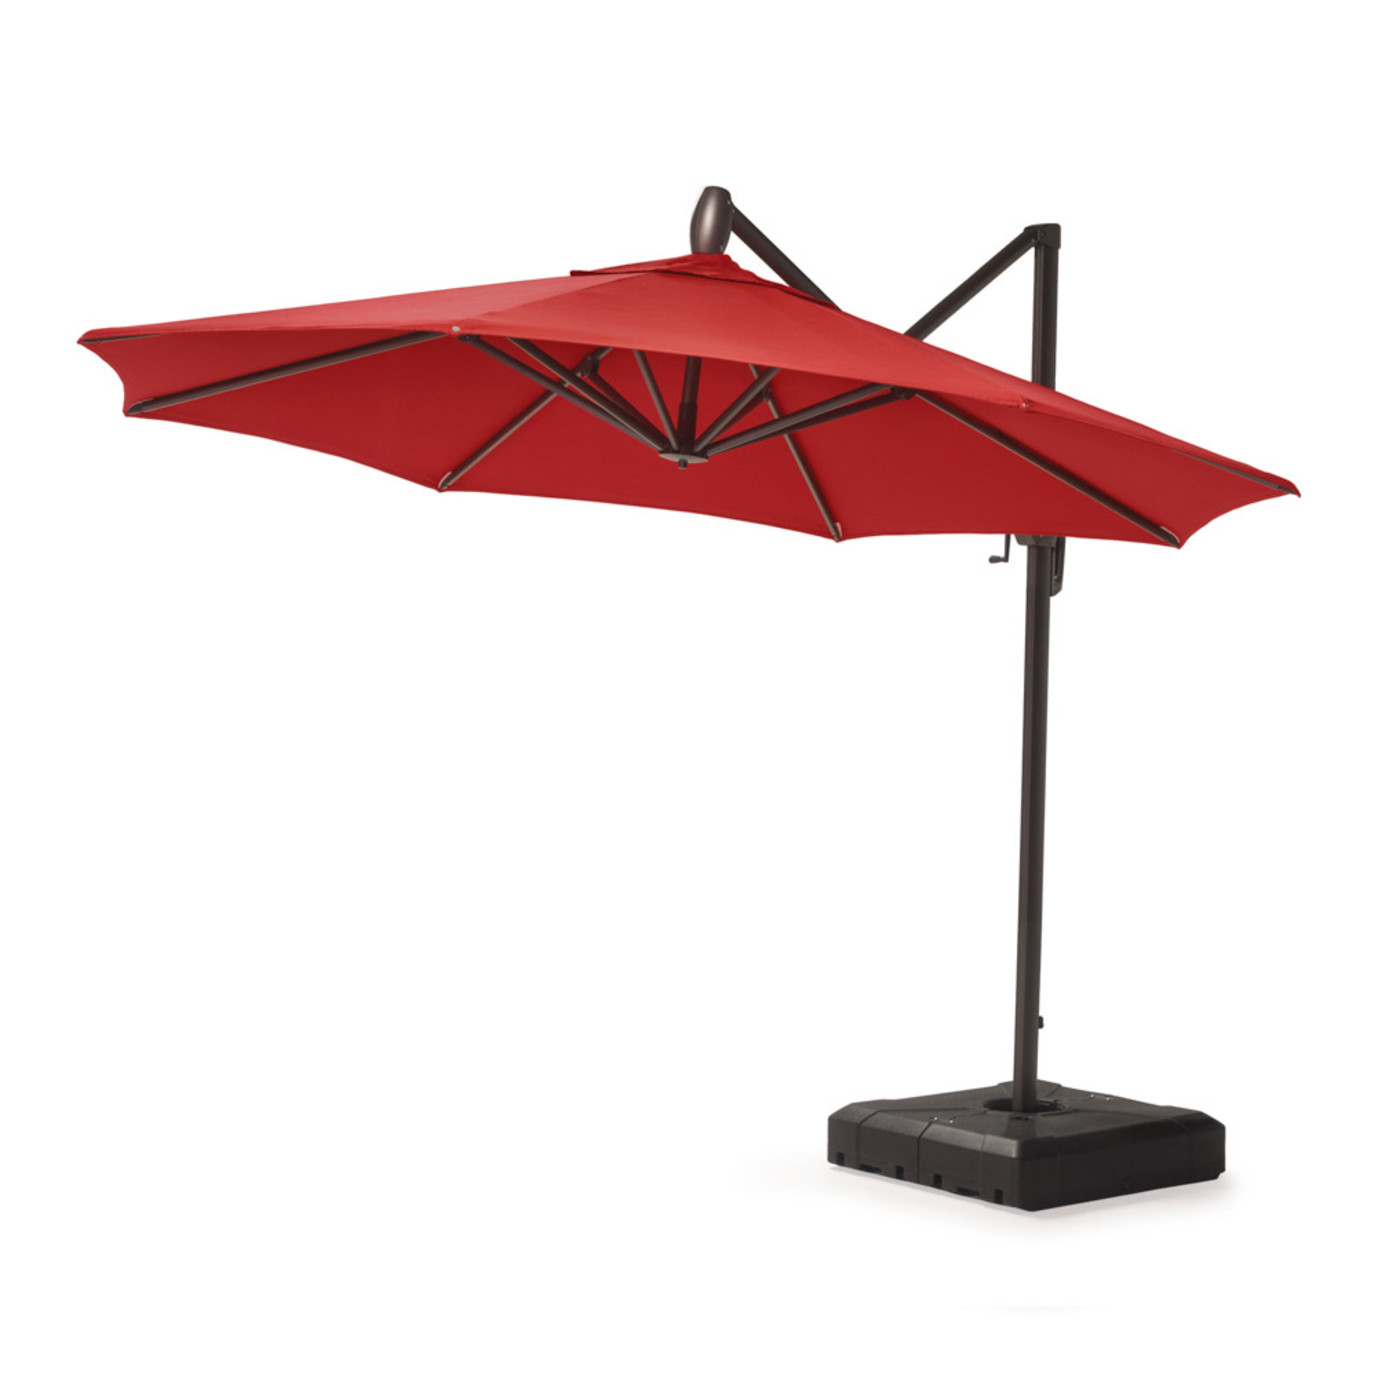 Modular Outdoor 10 Round Umbrella Sunset Red Rst Brands